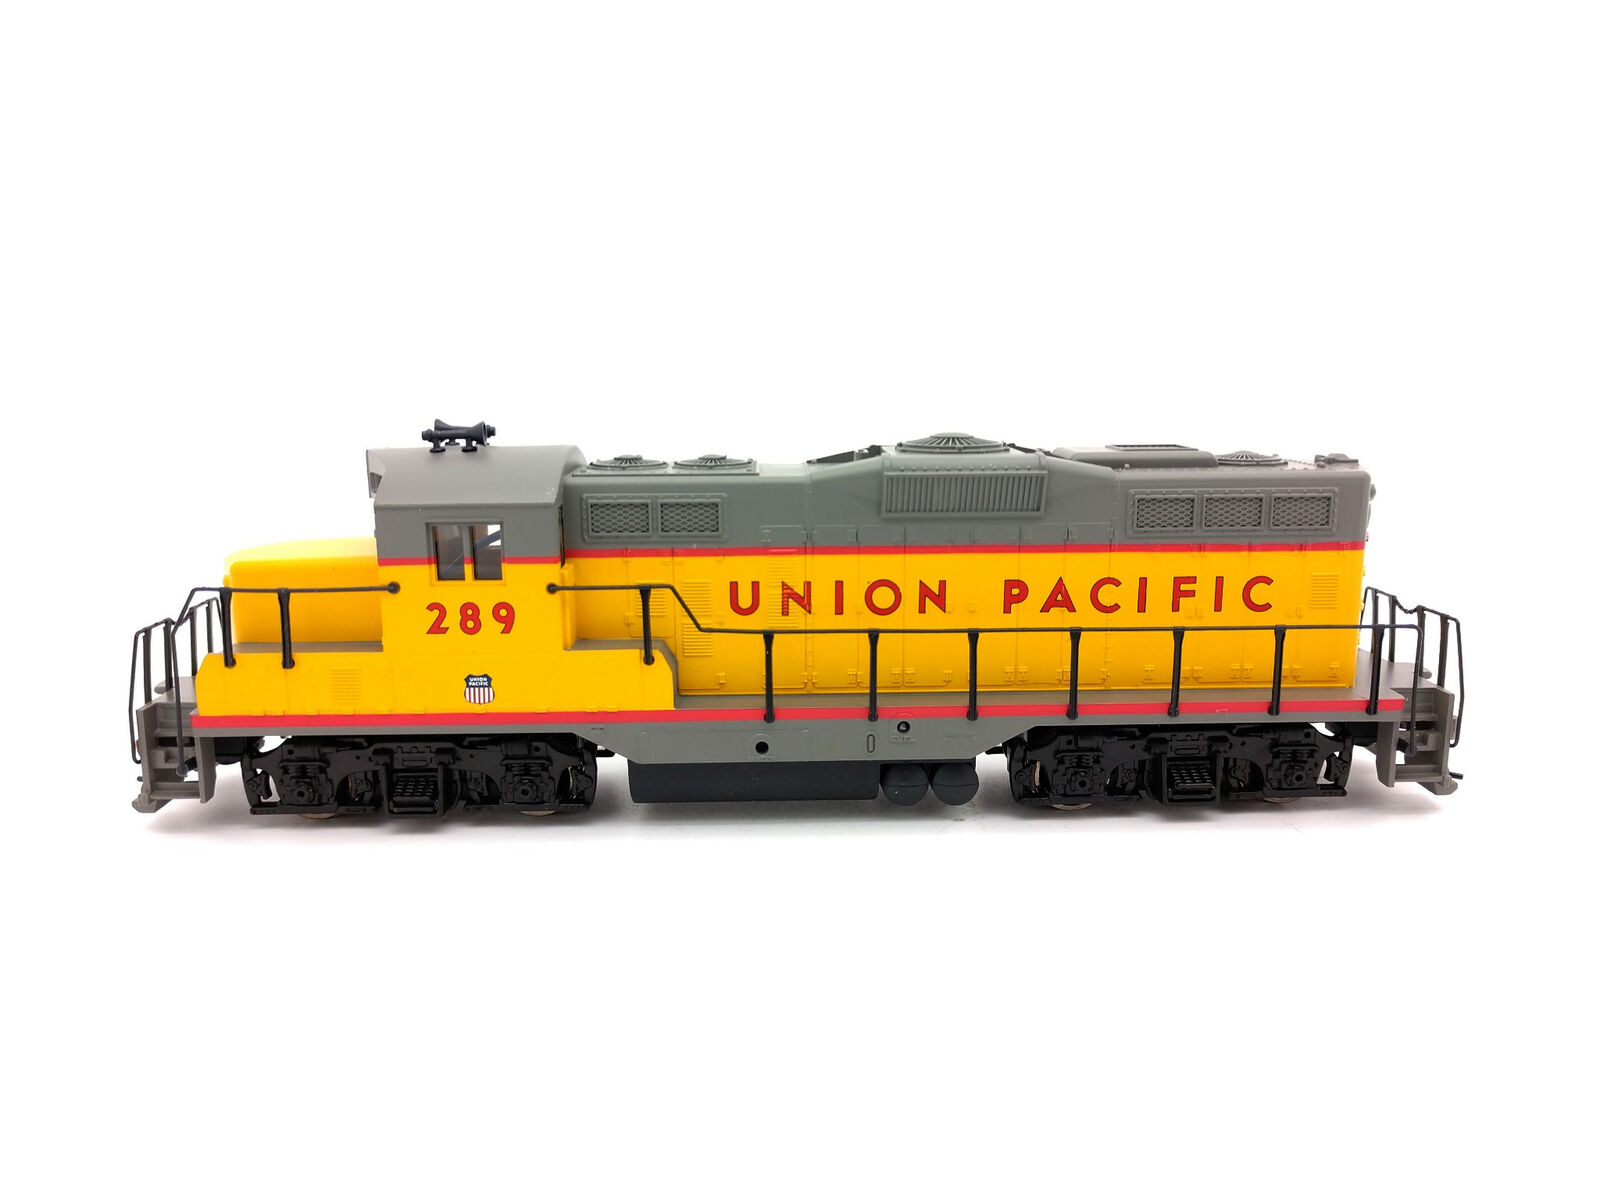 Union Pacific GP9M Locomotive  289 DCC-Equipped HO - Walthers  931-102